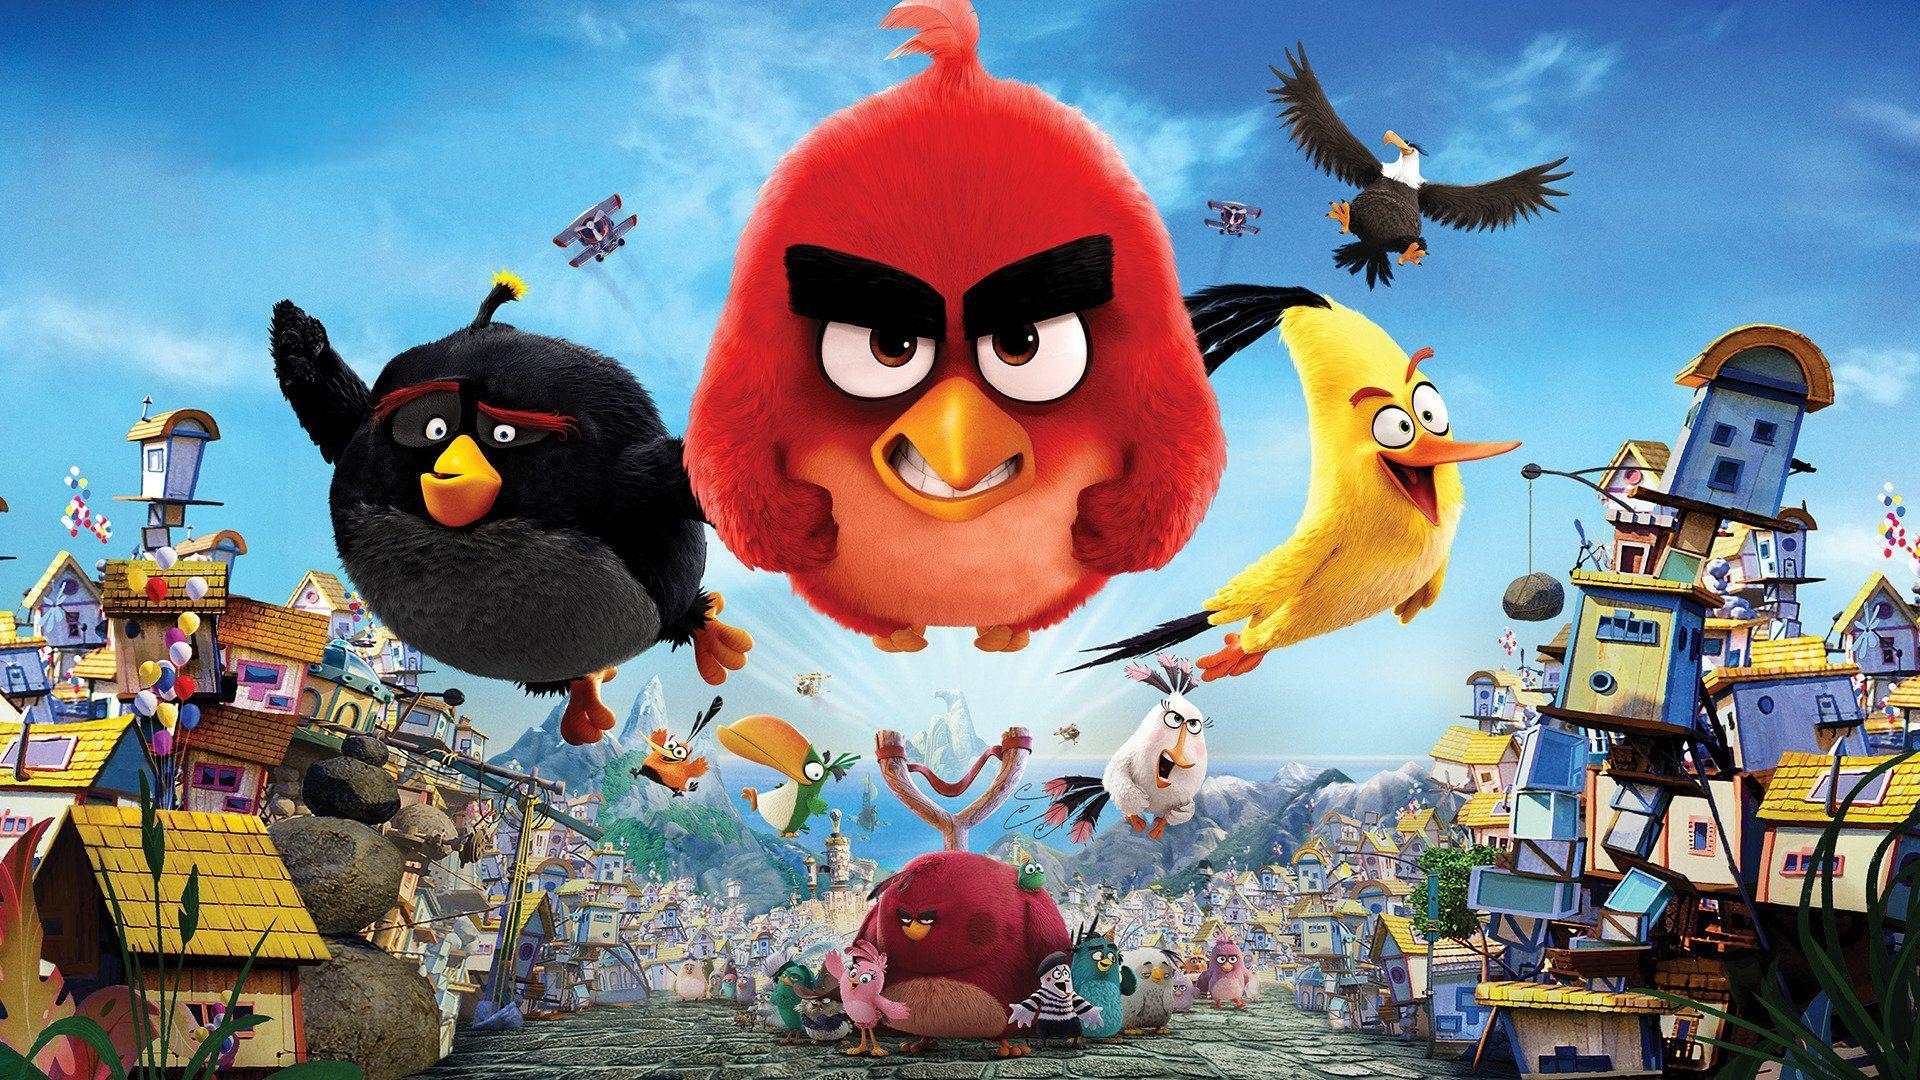 The Angry Birds Movie Wallpapers Wallpaper Cave